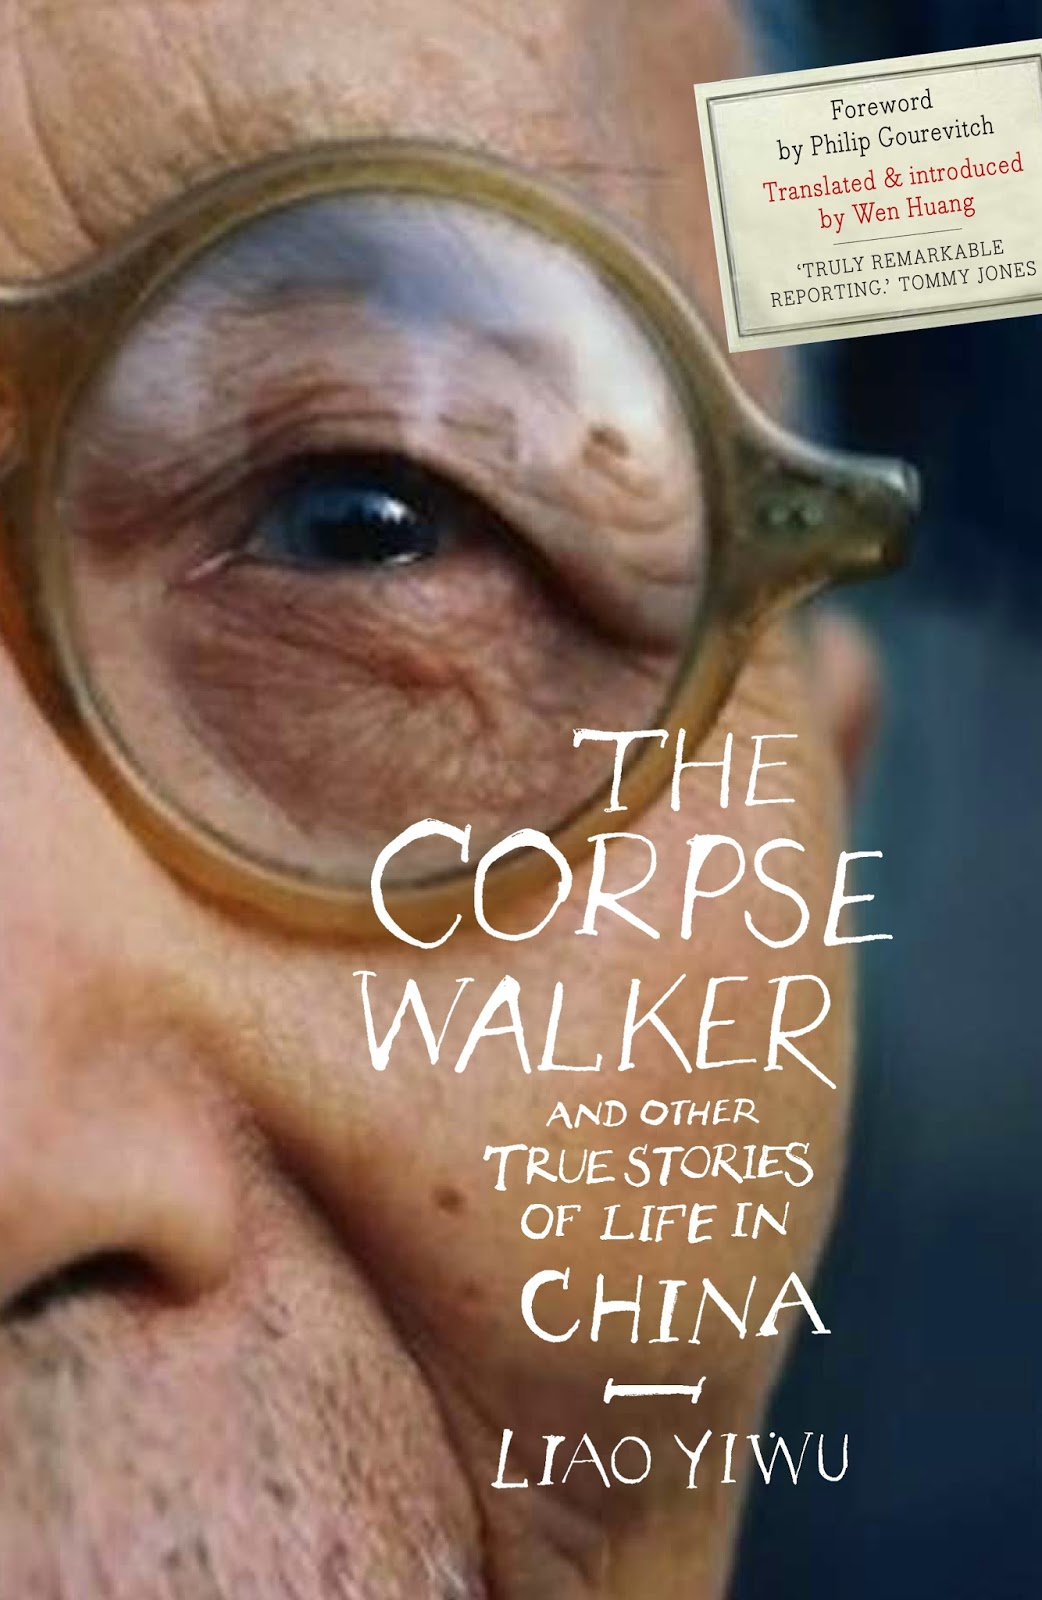 Download The Corpse Walker: Real Life Stories: China From the Bottom Up Ebook Online